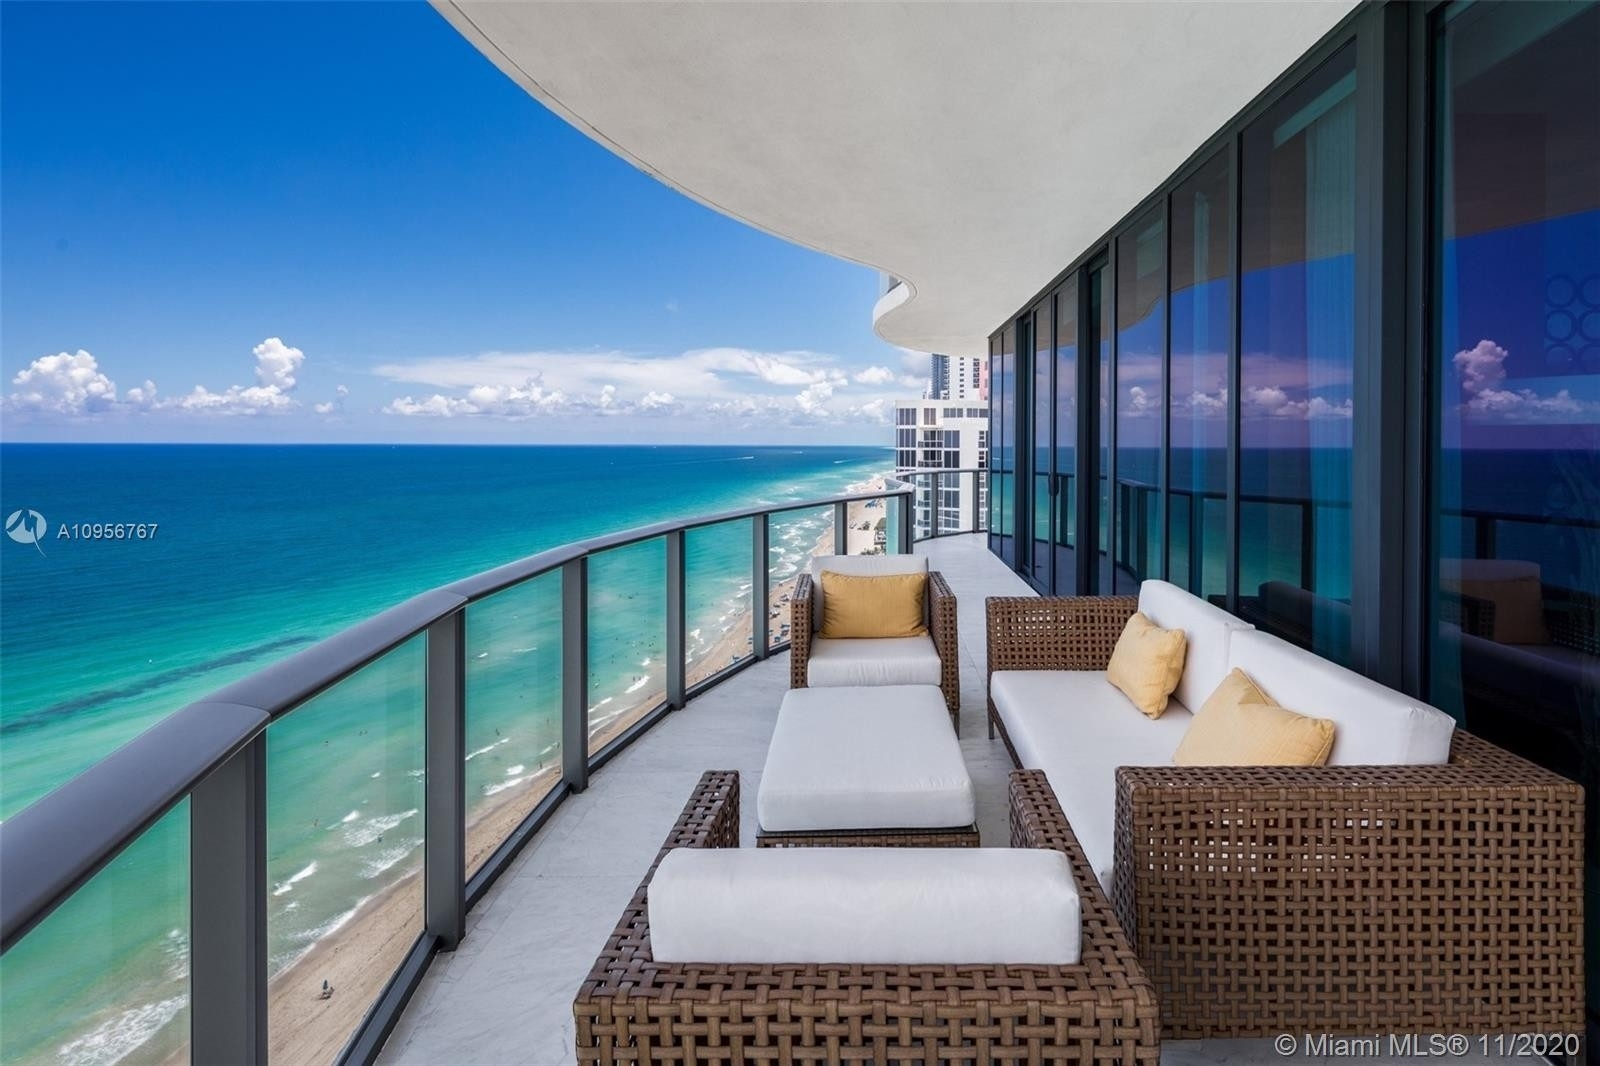 Property at 19575 Collins Ave , 21 Sunny Isles Beach, FL 33160